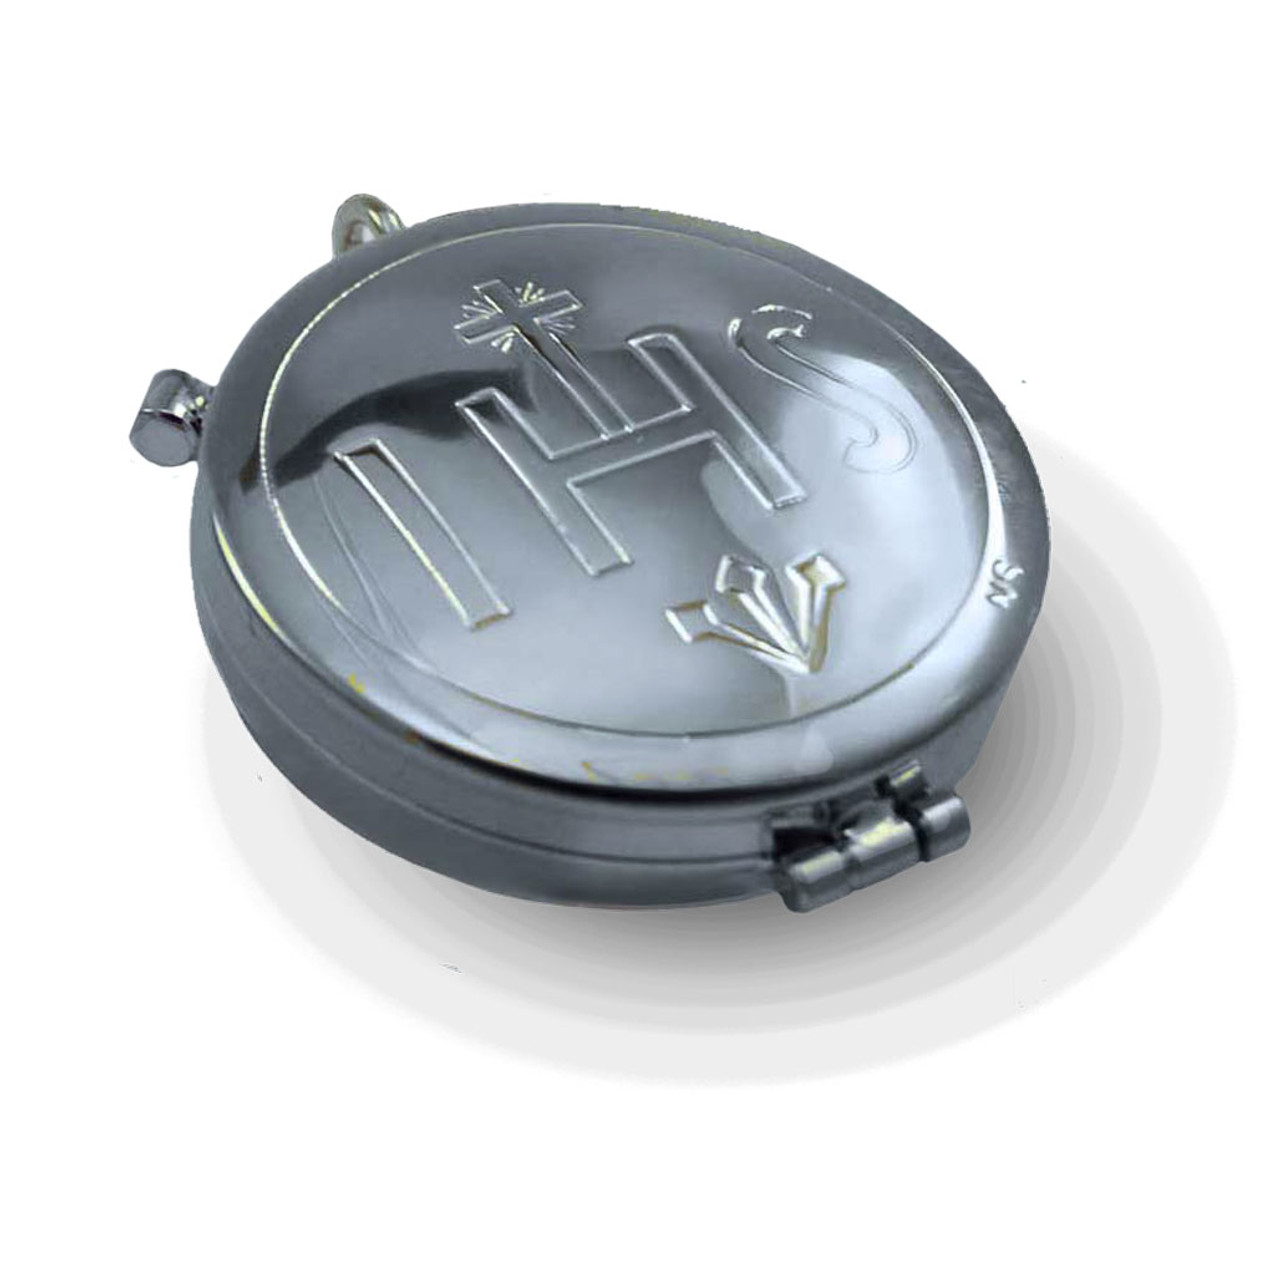 IHS Pyx with Nickel Plate Finish